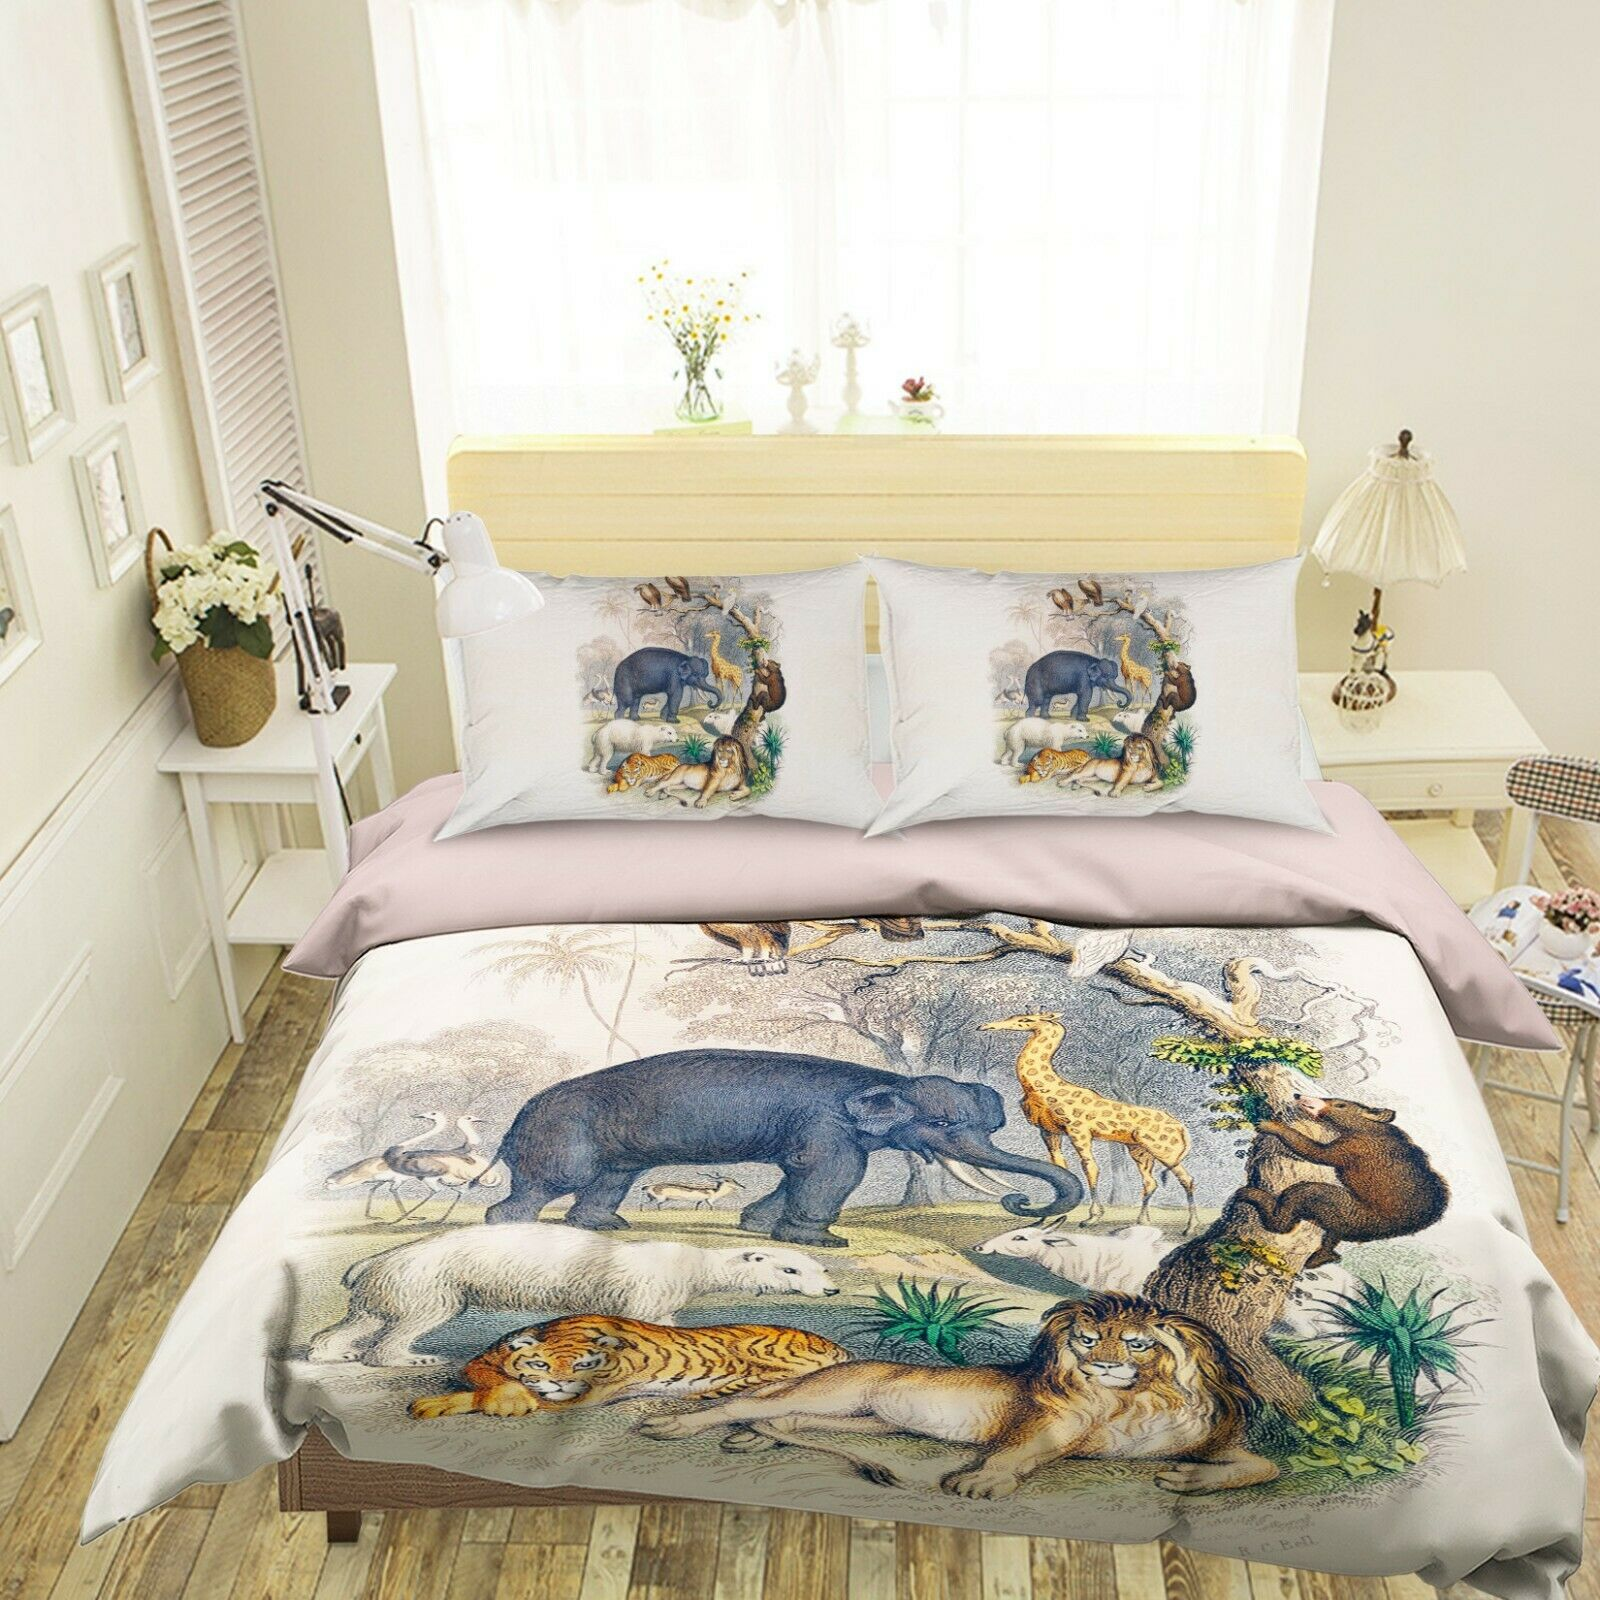 3D Zoo Lion N49 Animal Bed Pillowcases Quilt Duvet Cover Queen King Amy